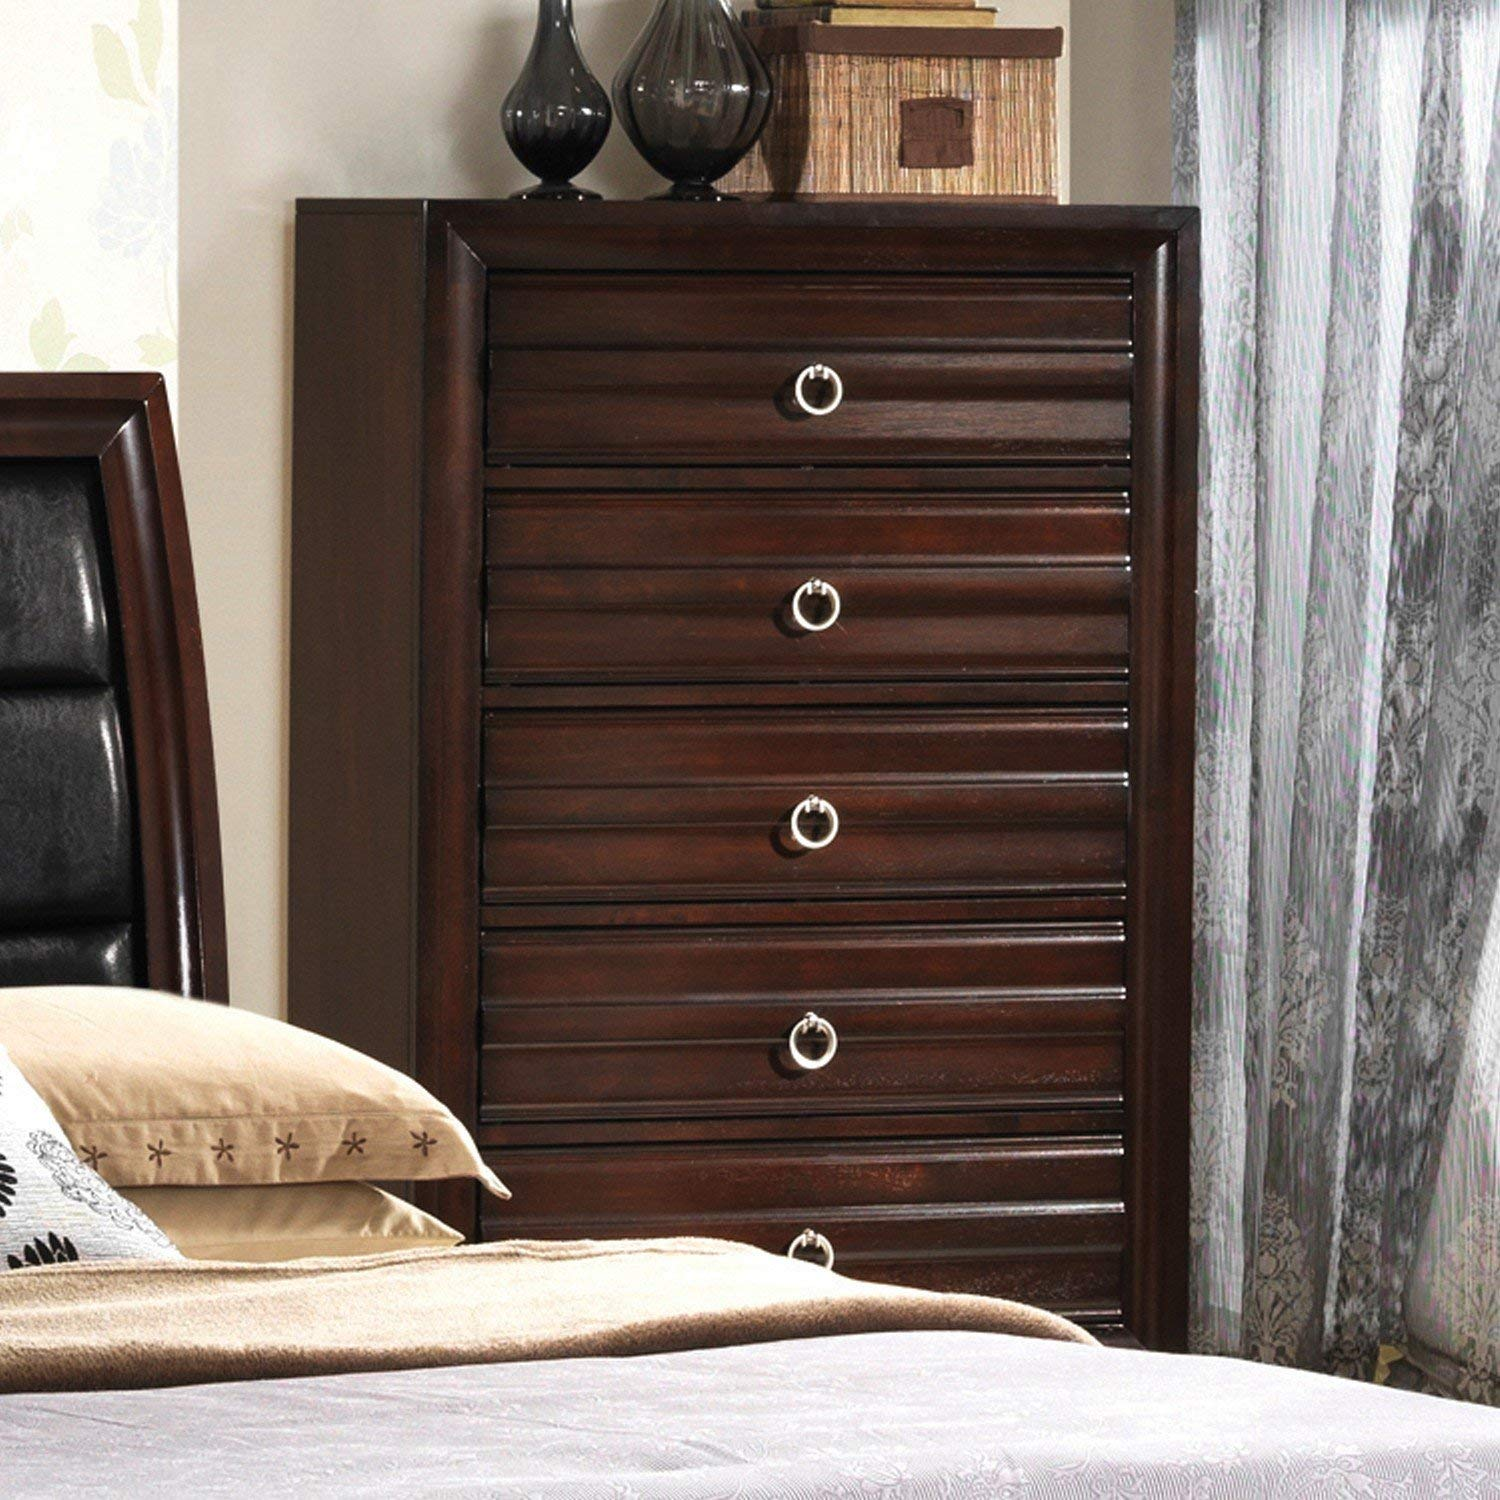 Get Quotations · Mahagony Chest Of Drawers + Expert Guide